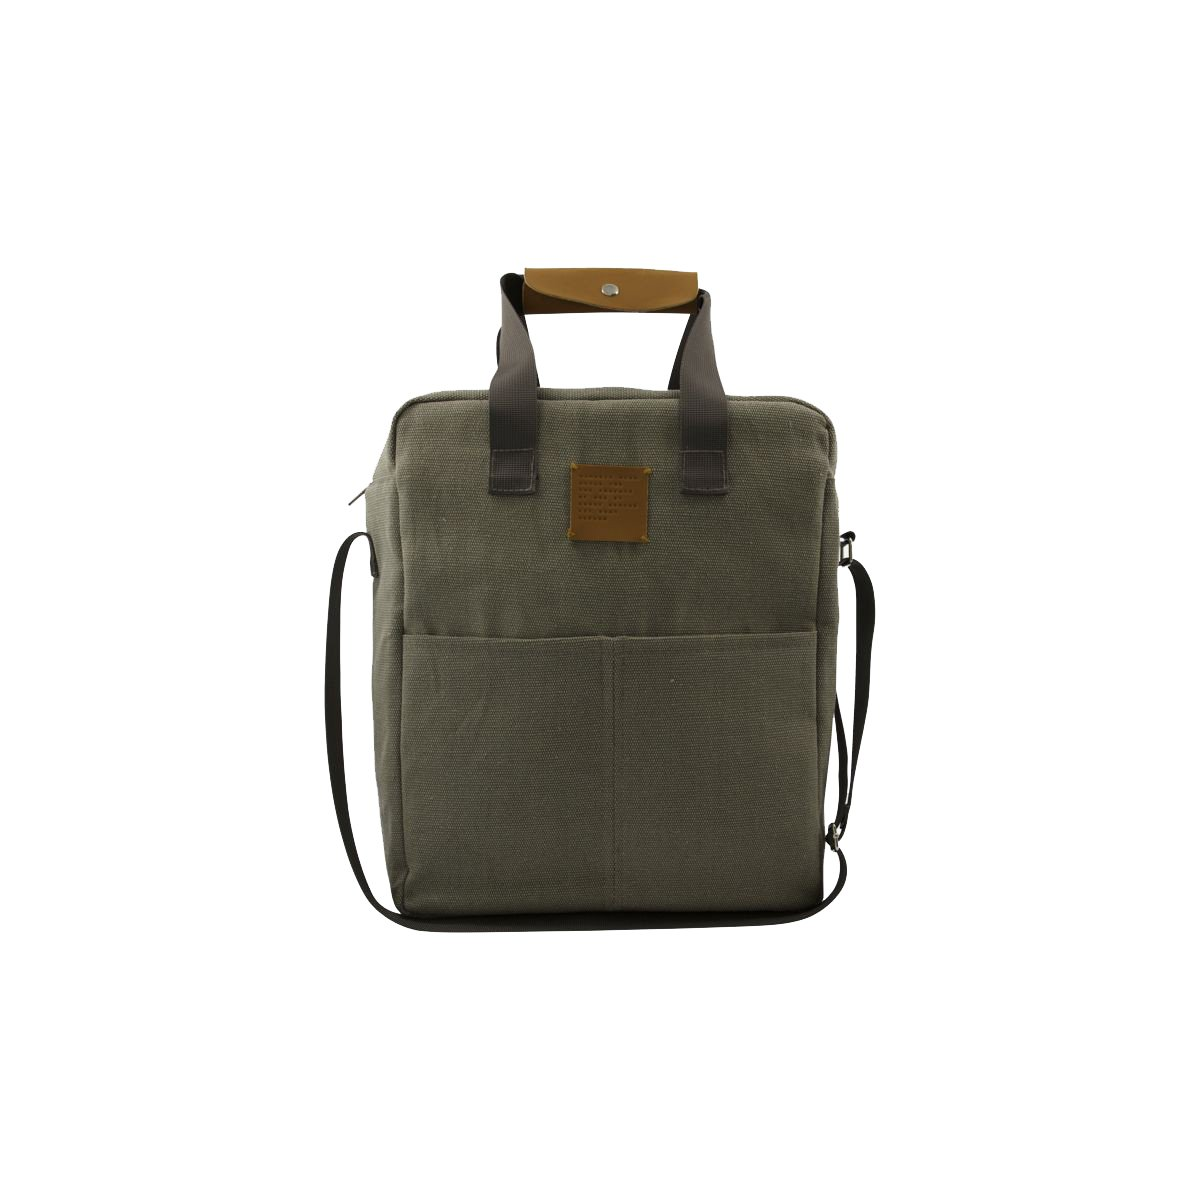 House Doctor - Cooling Picnic Bag - Army Green (210850101)